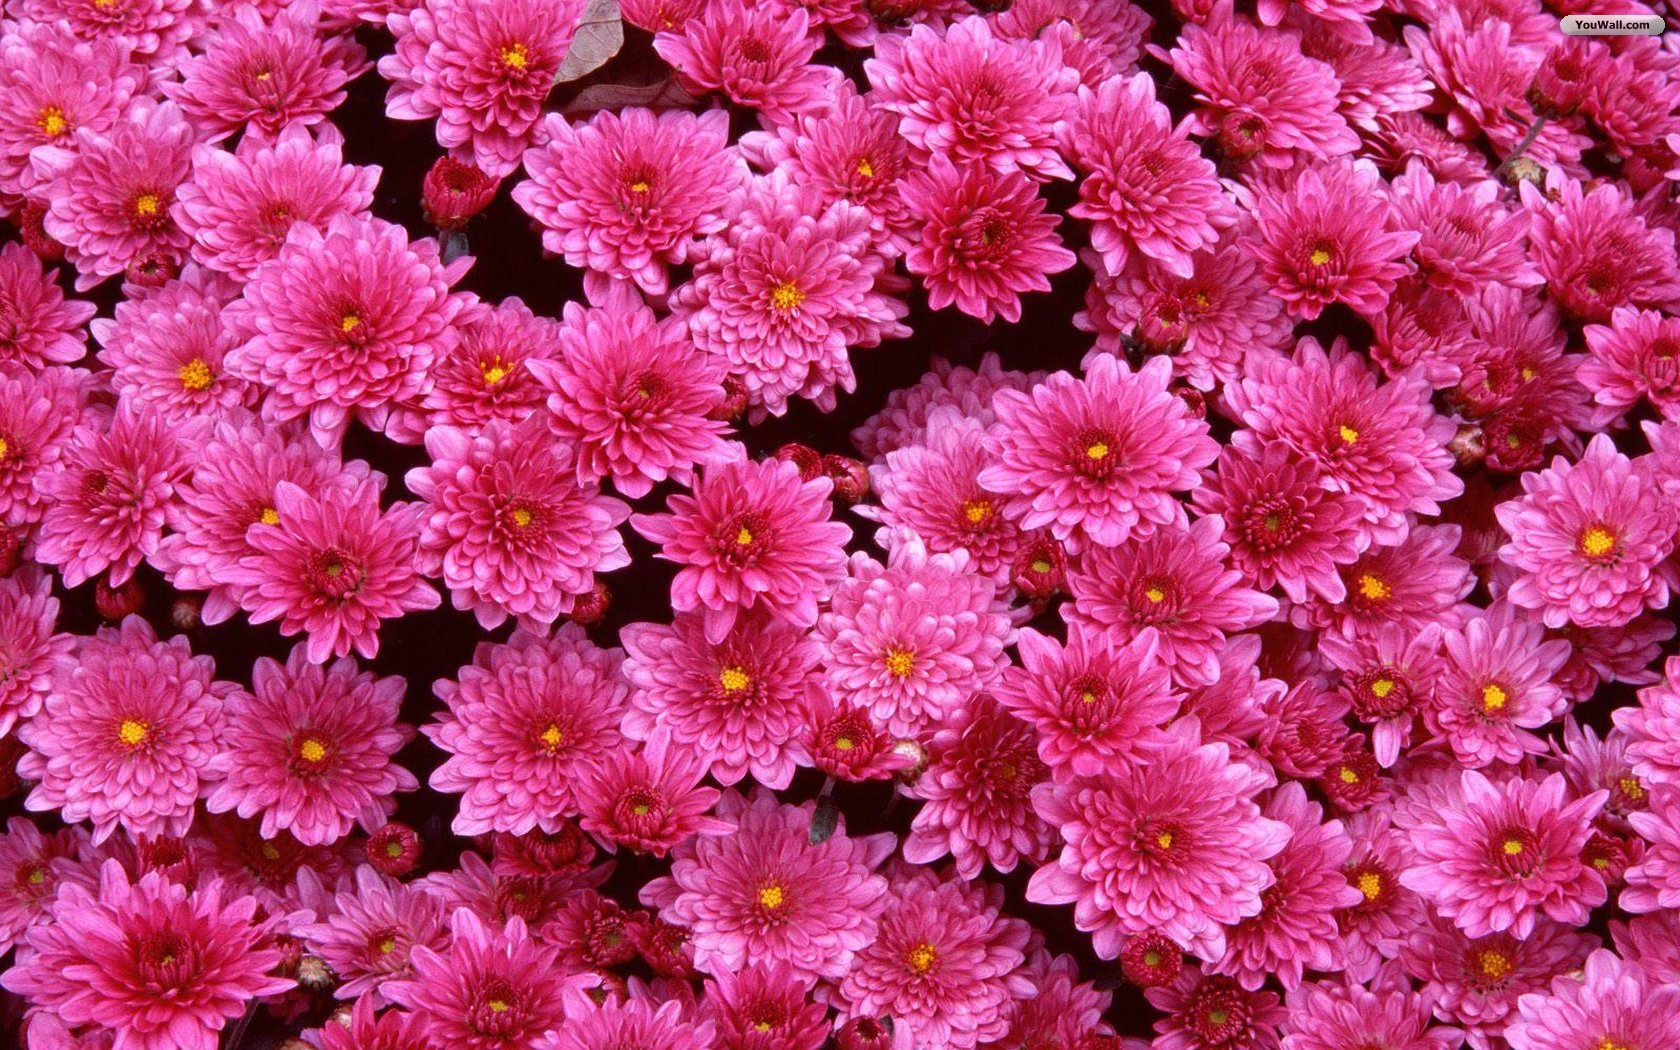 Free best wallpaper images flowers background - SF Wallpaper